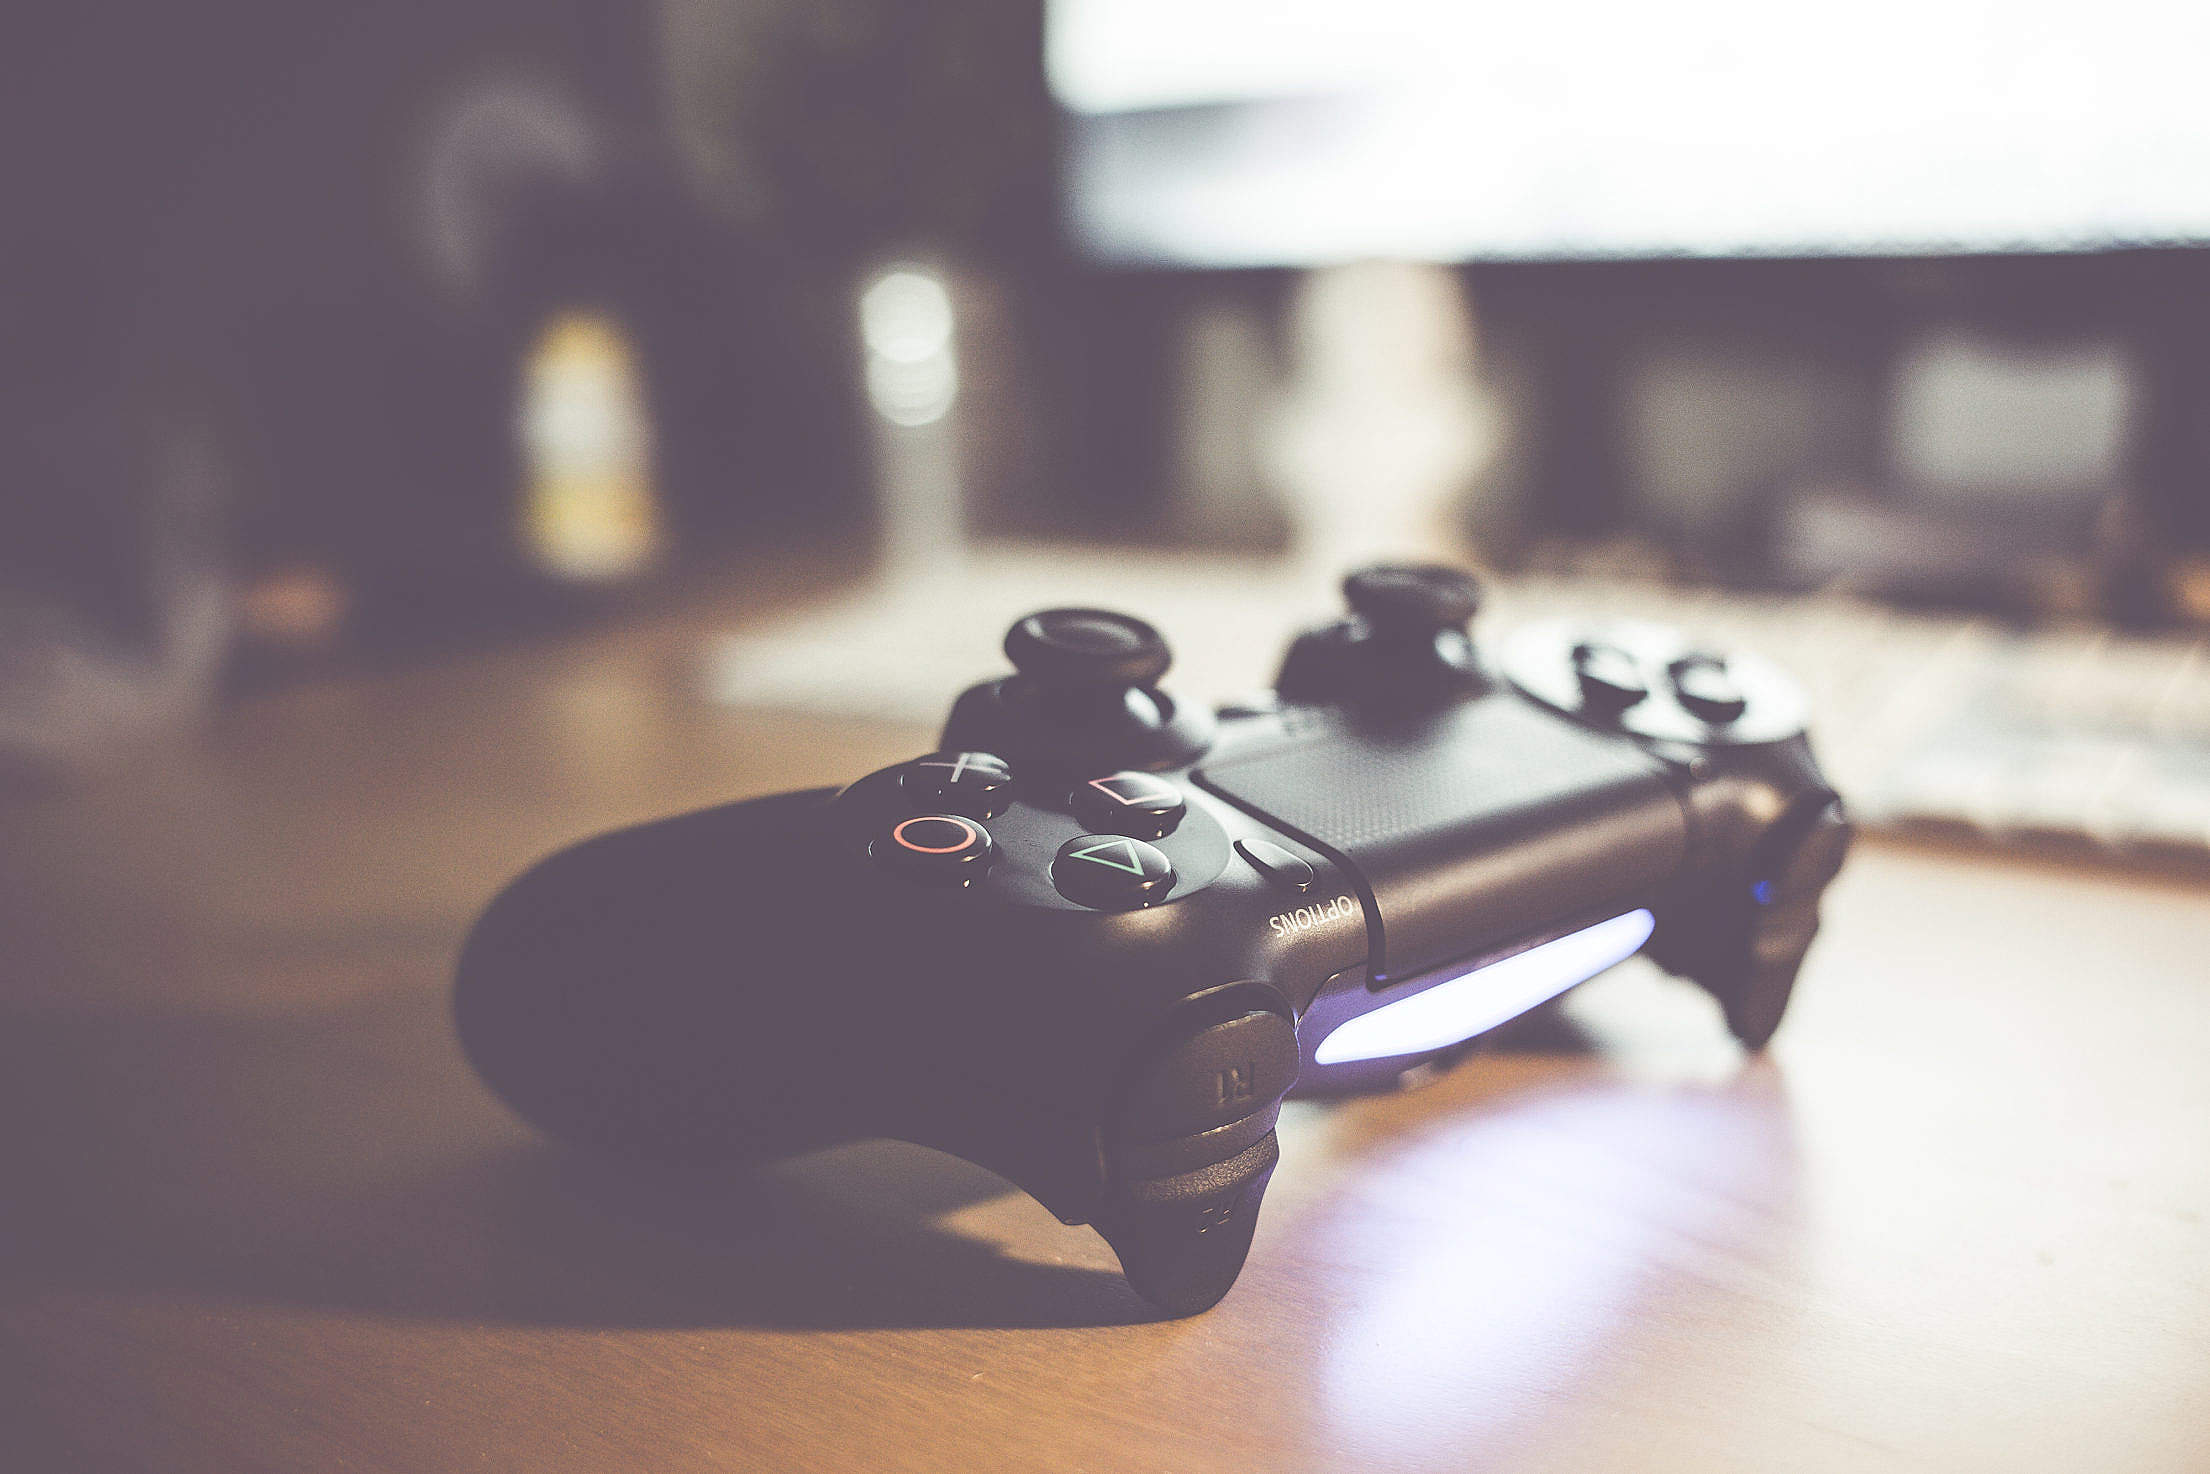 Playstation 4 Gaming Controller Free Stock Photo